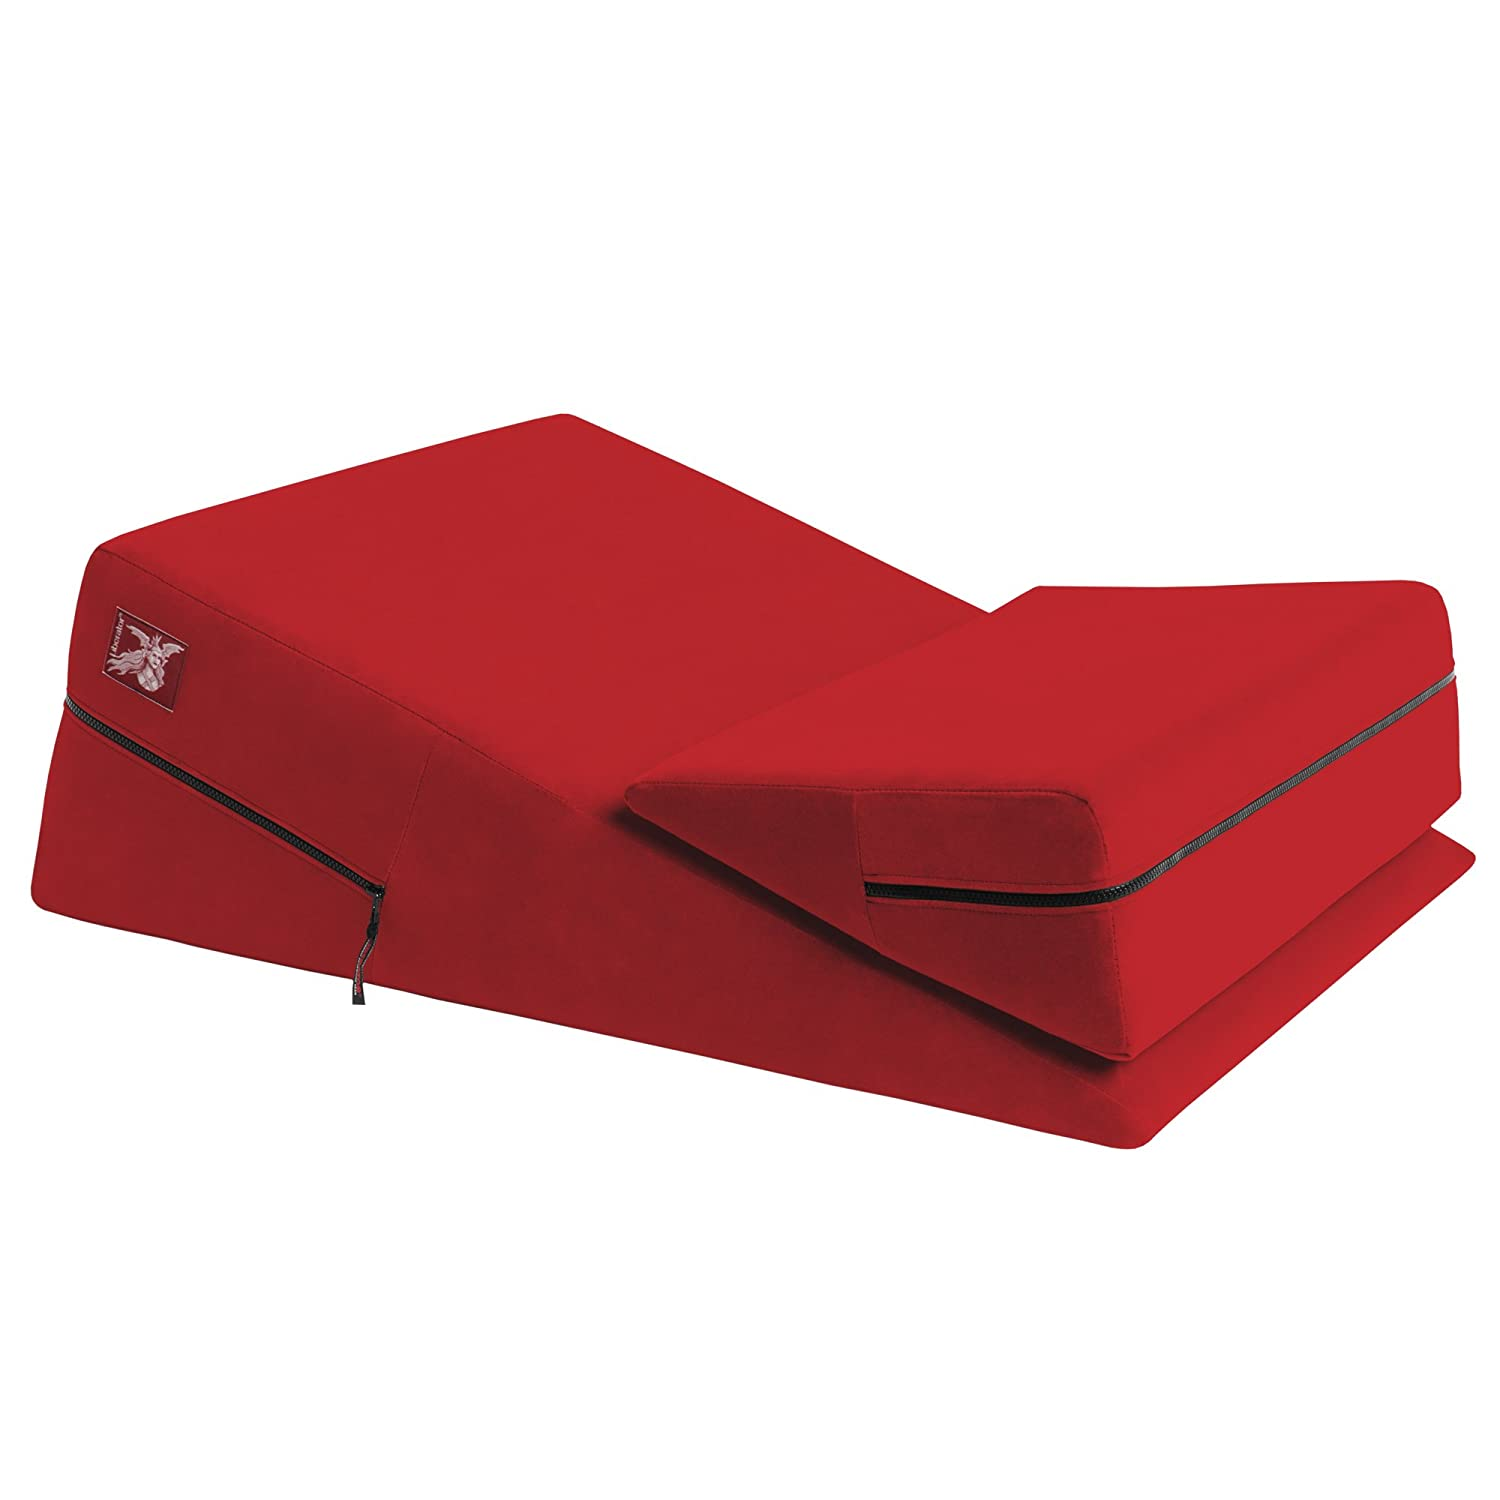 Liberator Bedroom Adventure Gear Wedge/Ramp Combo (Original Short), Red